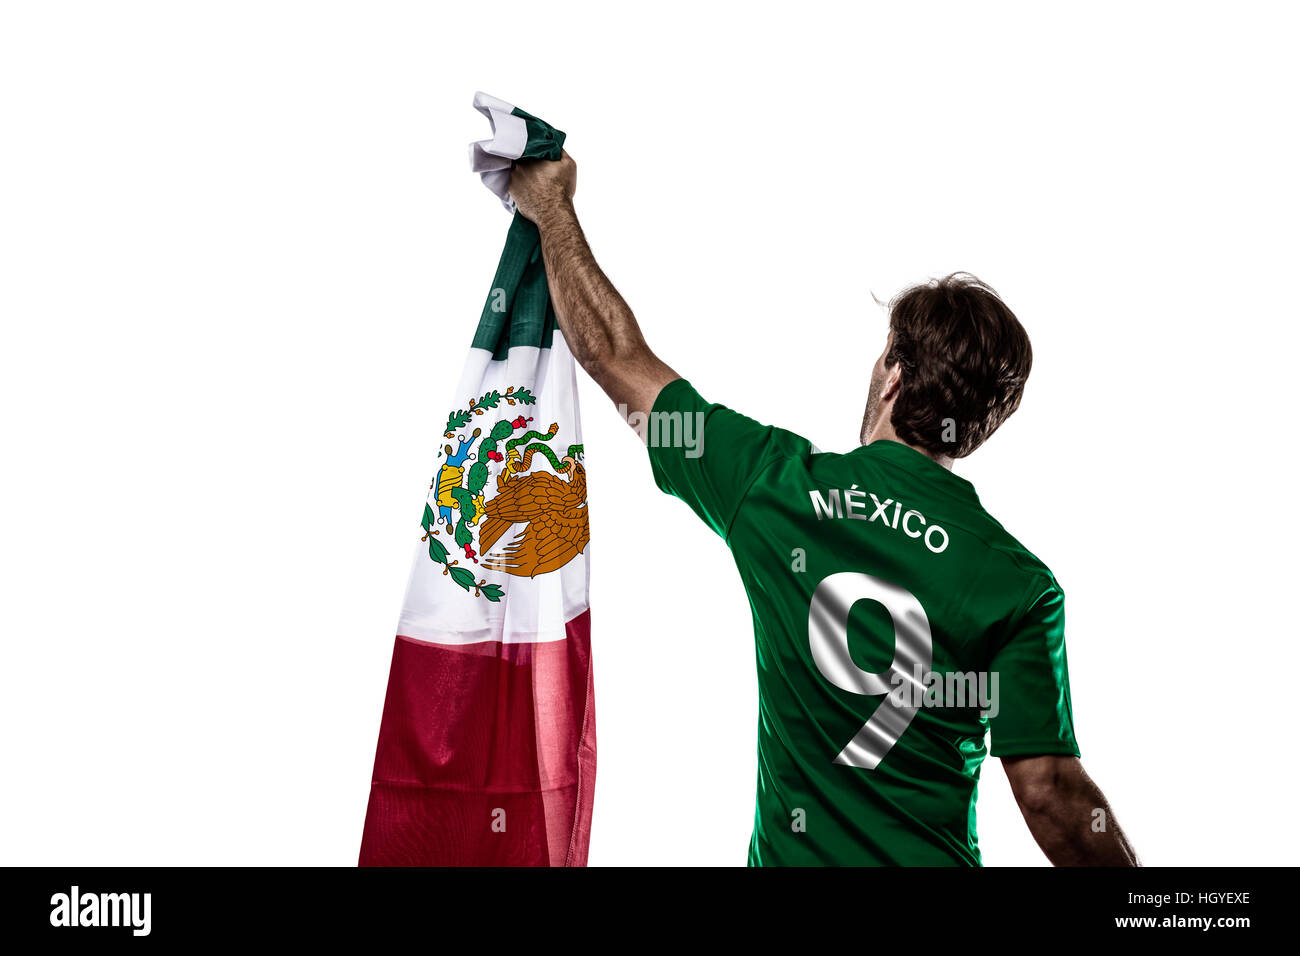 Mexican soccer player, celebrating on the white backgrond. - Stock Image